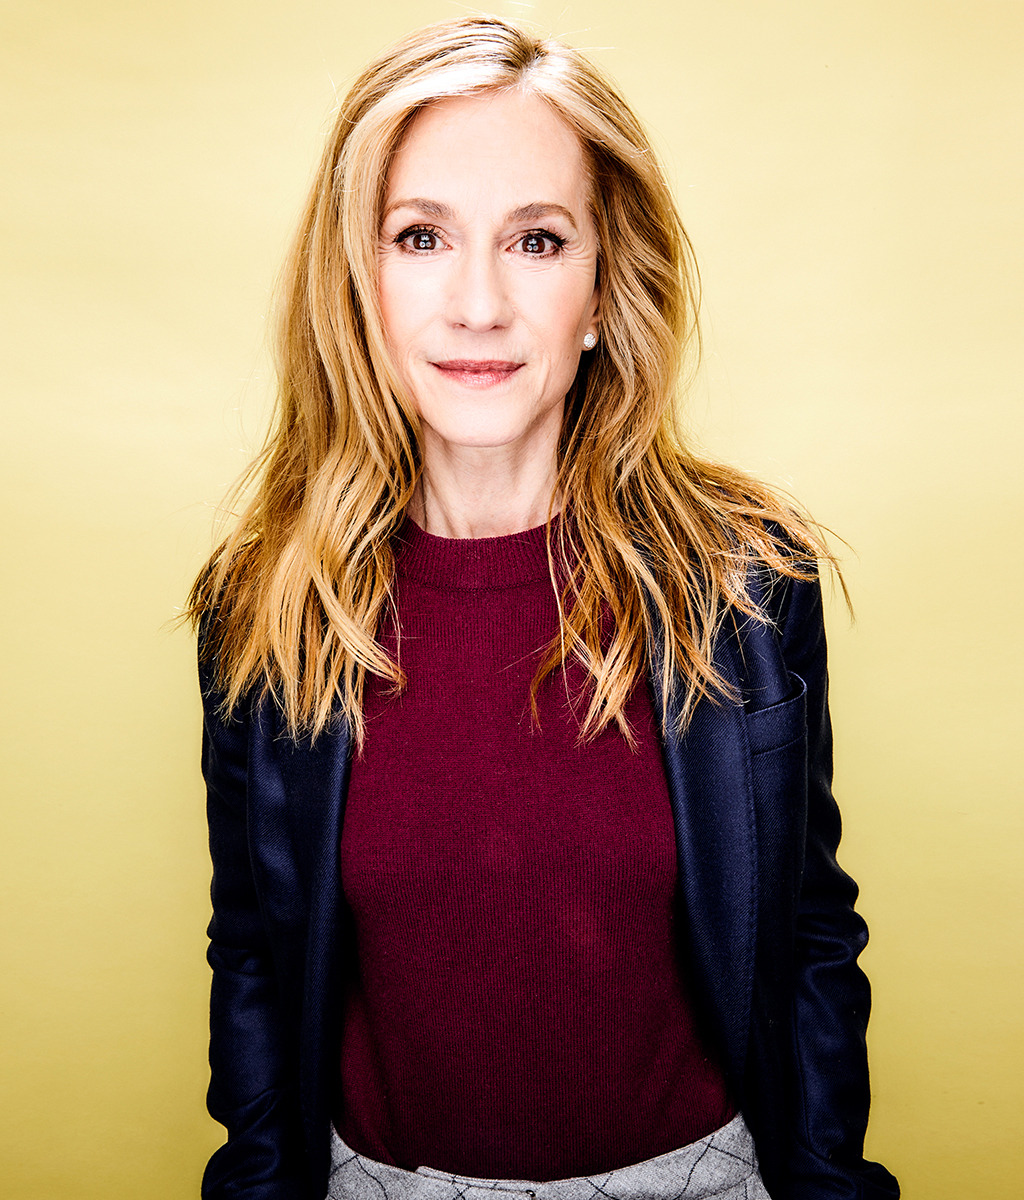 holly-hunter-age-height-weight